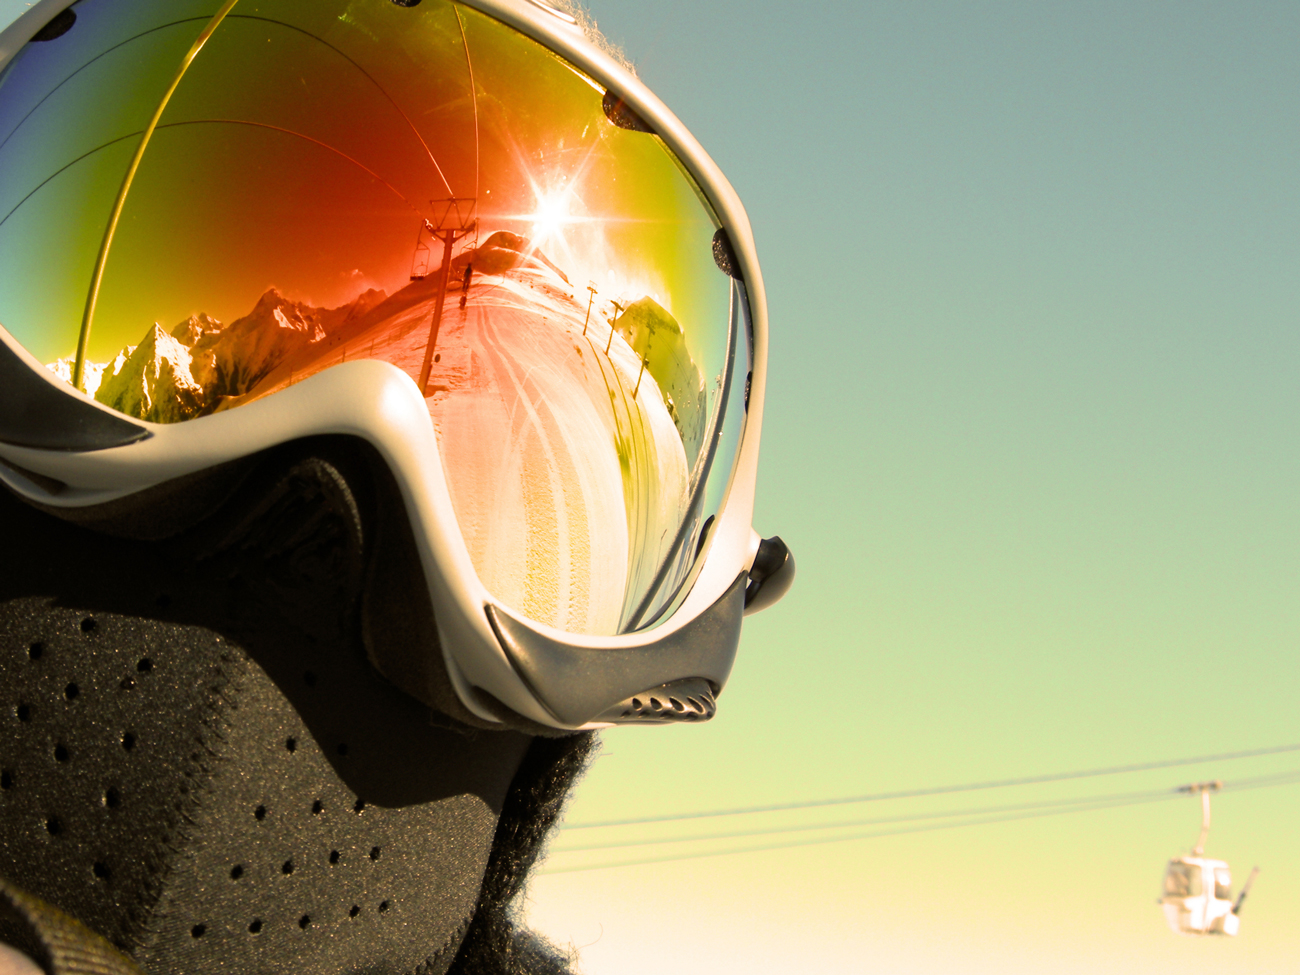 17873-desktop-wallpapers-ski-sport